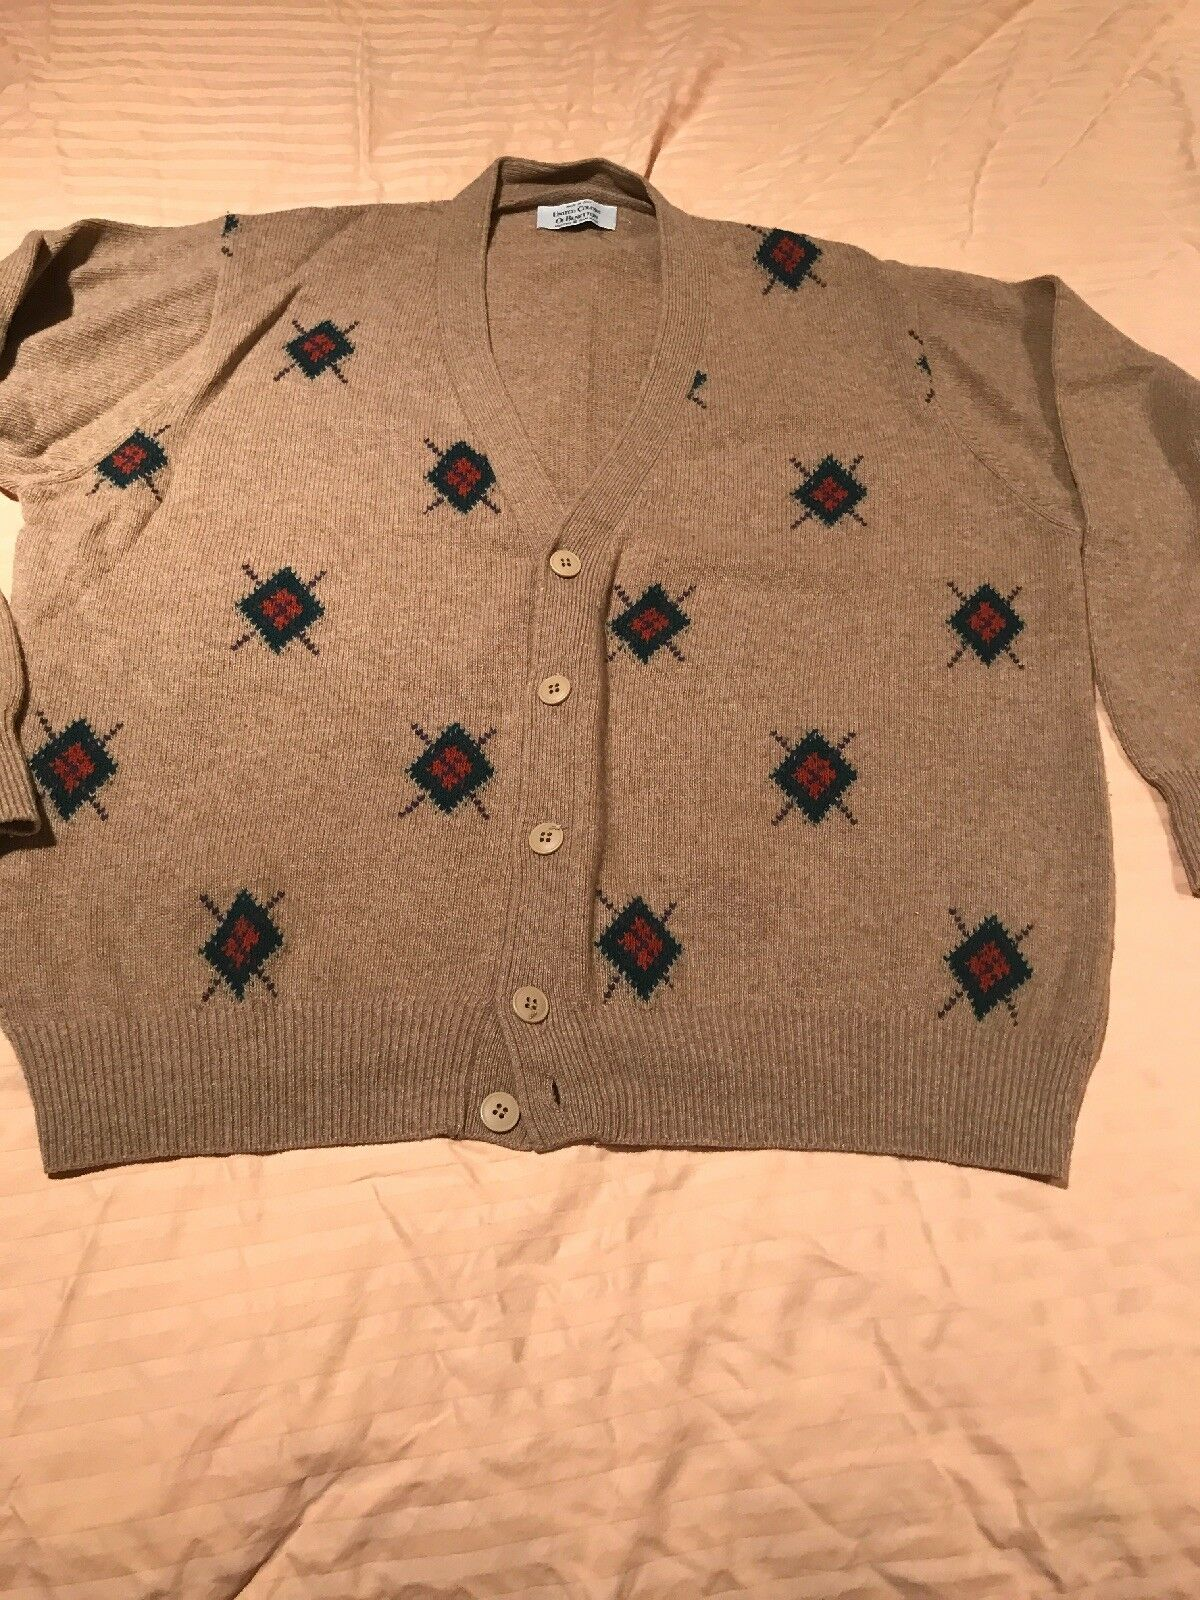 Men's M Size 50 Benetton Cardigan Sweater NWOT Was  Made In  Laine Wool